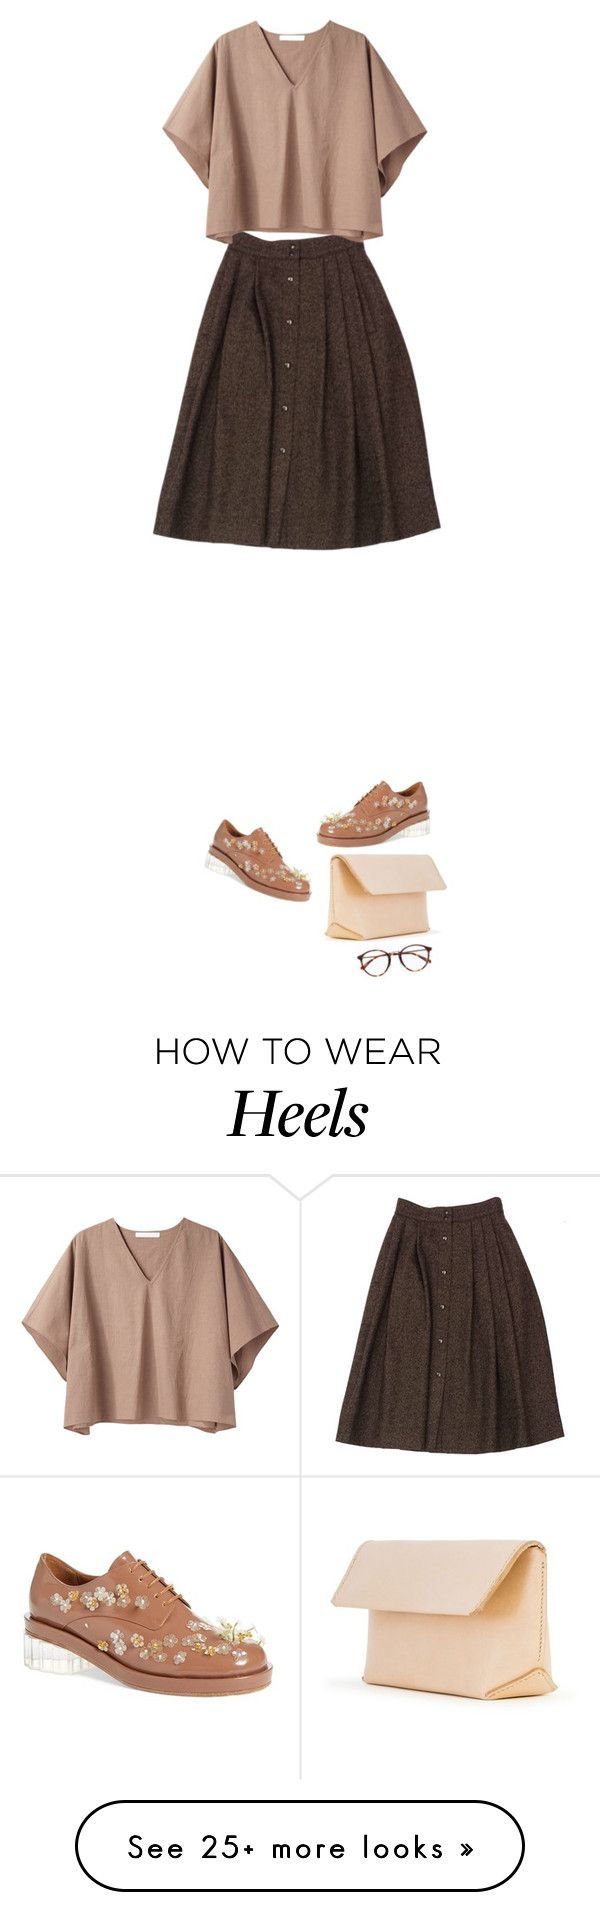 """Just."" by sharplilteeth on Polyvore featuring Guy Laroche, Apiece Apart, Simone Rocha and Iala Díez"